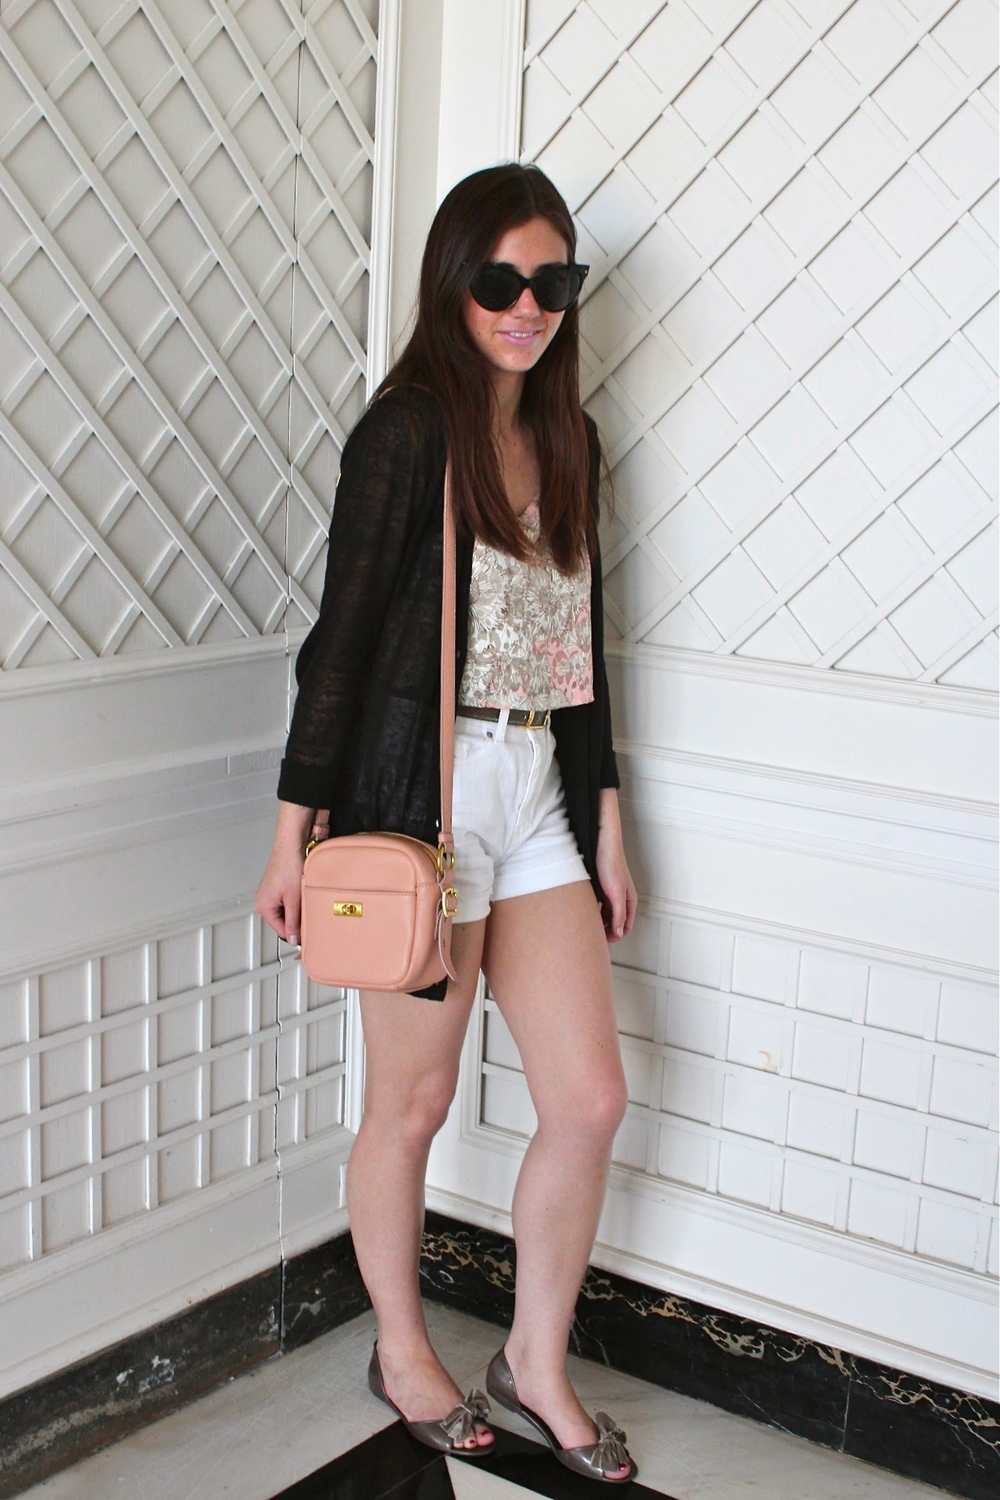 Crop Top: Forever21; High-Waisted Shorts: BDG, Urban Outfitters; Linen Cardigan: KEW, Jigsaw London; Belt: Jaeger; Mini Bag: J.Crew